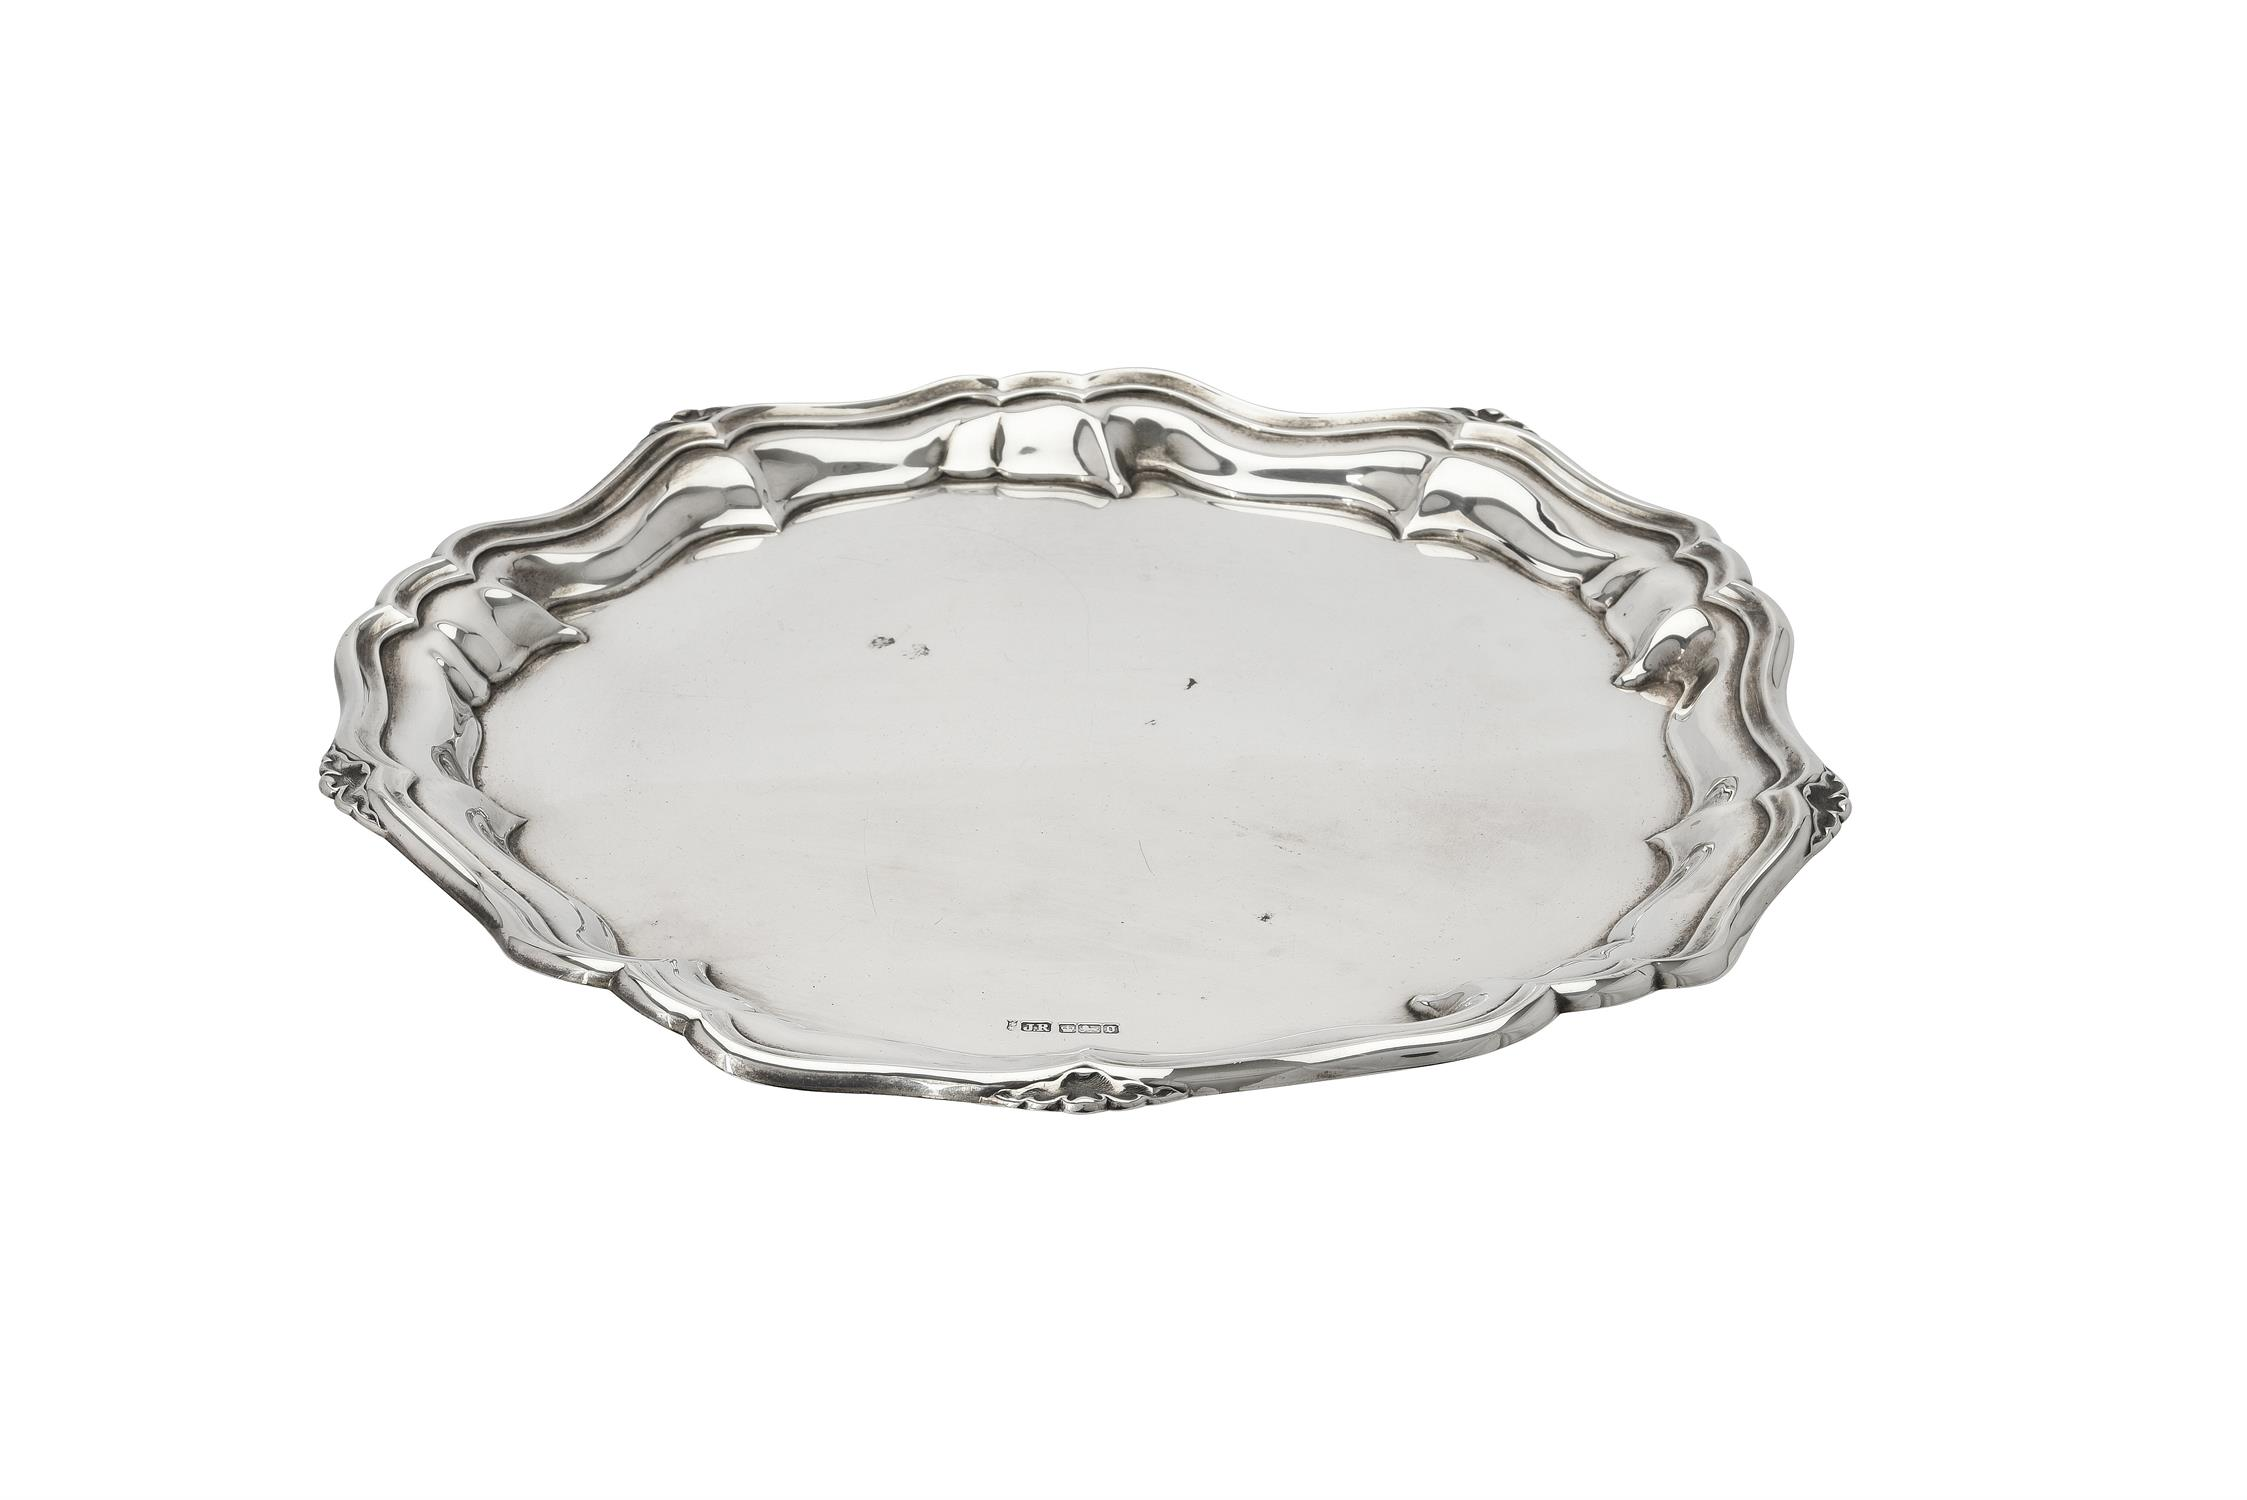 An Edwardian silver shaped circular salver by Joseph Rodgers & Sons